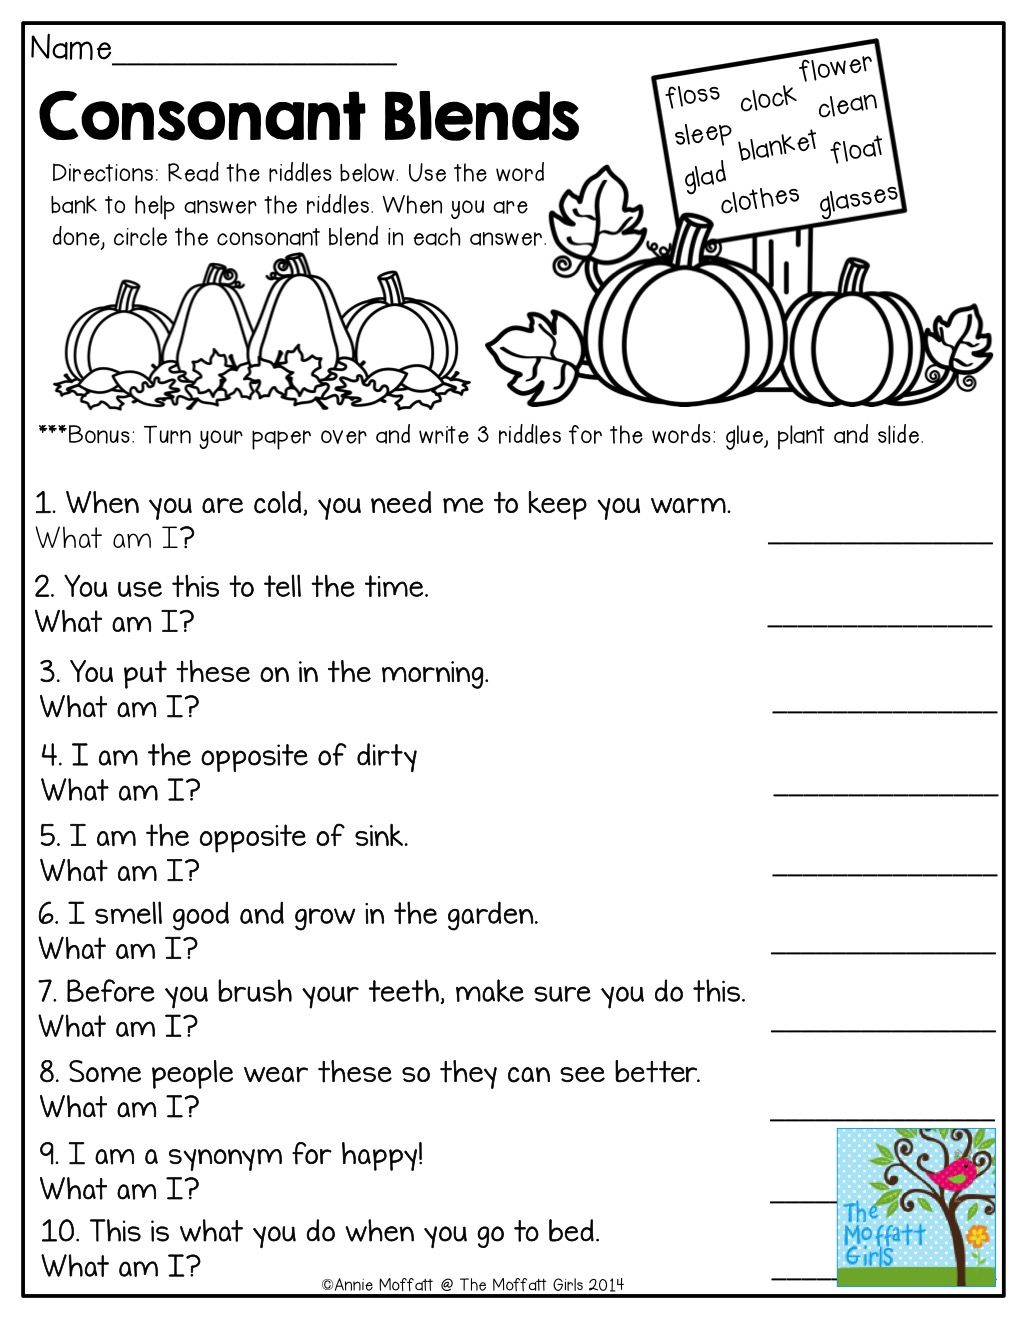 Worksheets Consonant Blend Worksheets consonant blends fill in the blank with missing letter worksheet for education stock